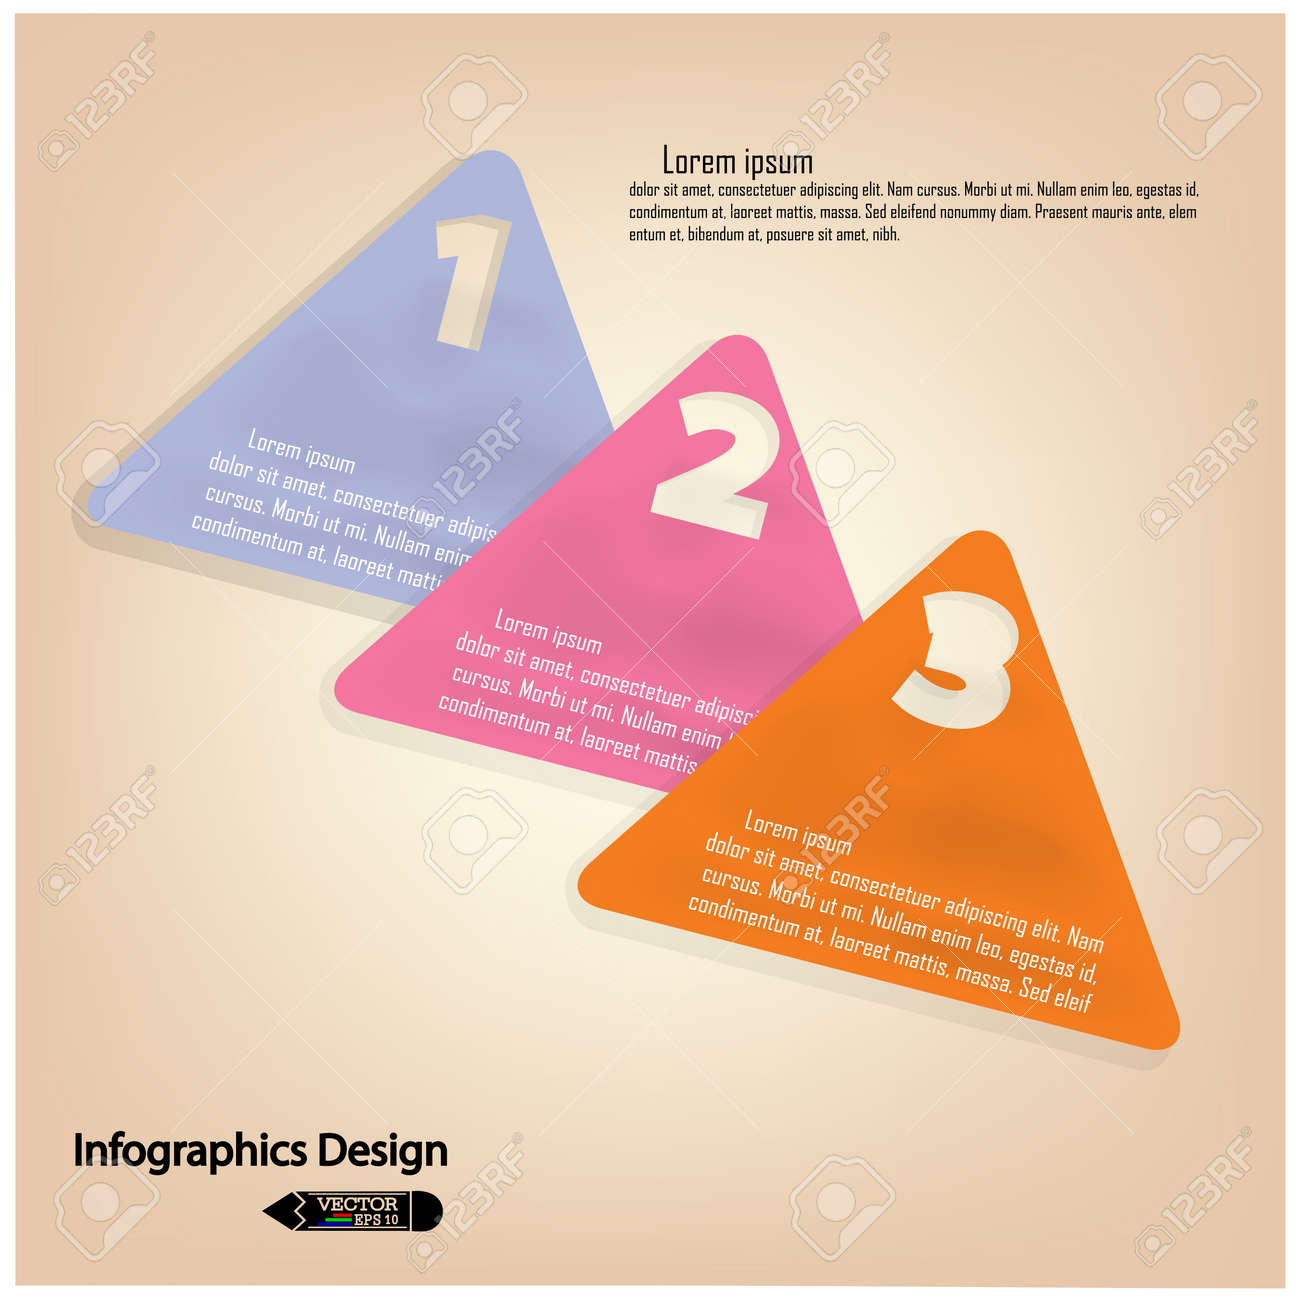 colorful presentation template with numbers and place for your text  Vector illustration Stock Vector - 23263125